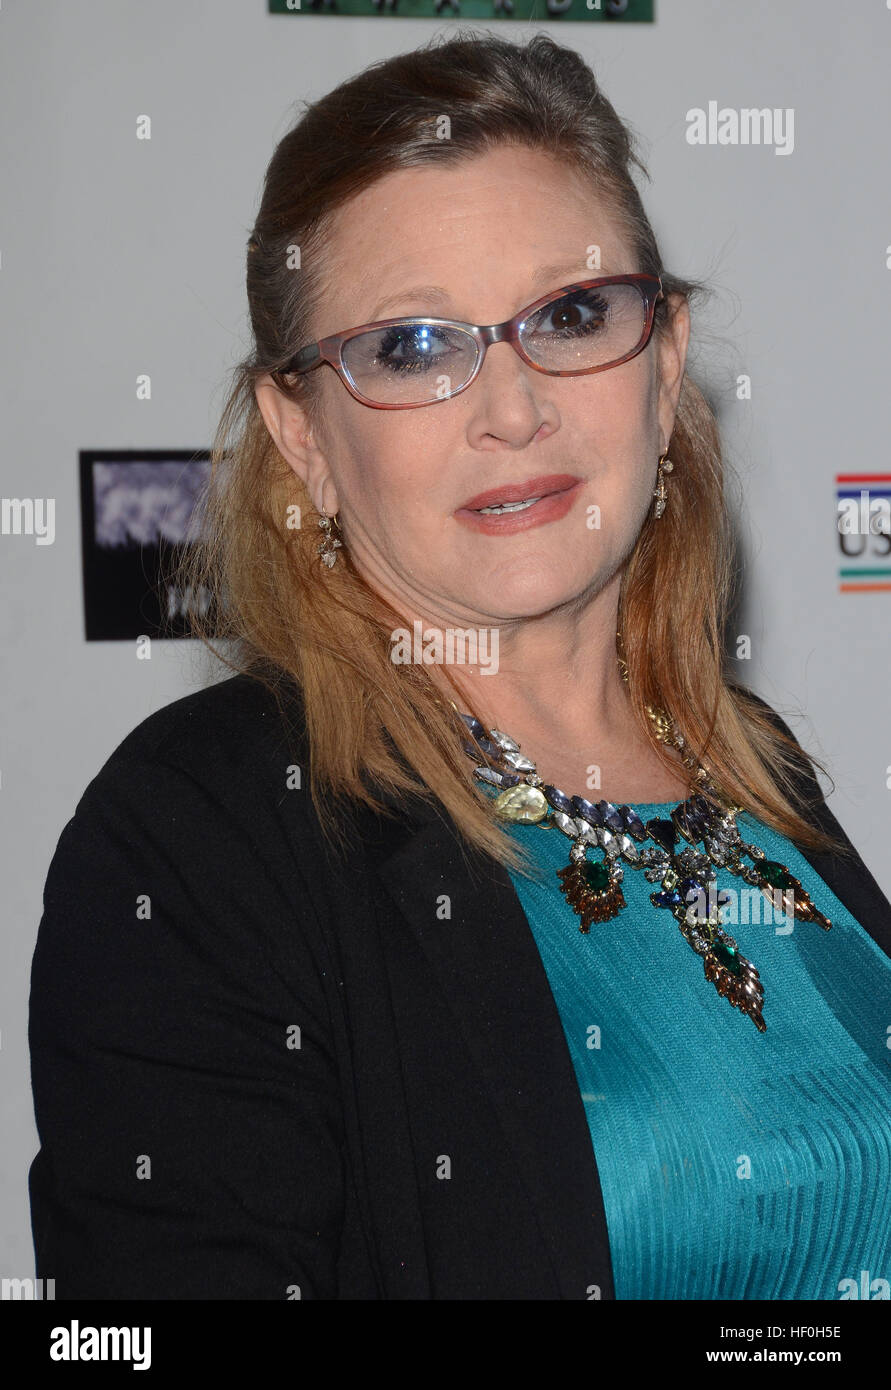 FILE PIC: Hollywood, CA, USA. 19th Feb, 2015. 27 December 2016 - Carrie Fisher, the iconic actress who portrayed - Stock Image